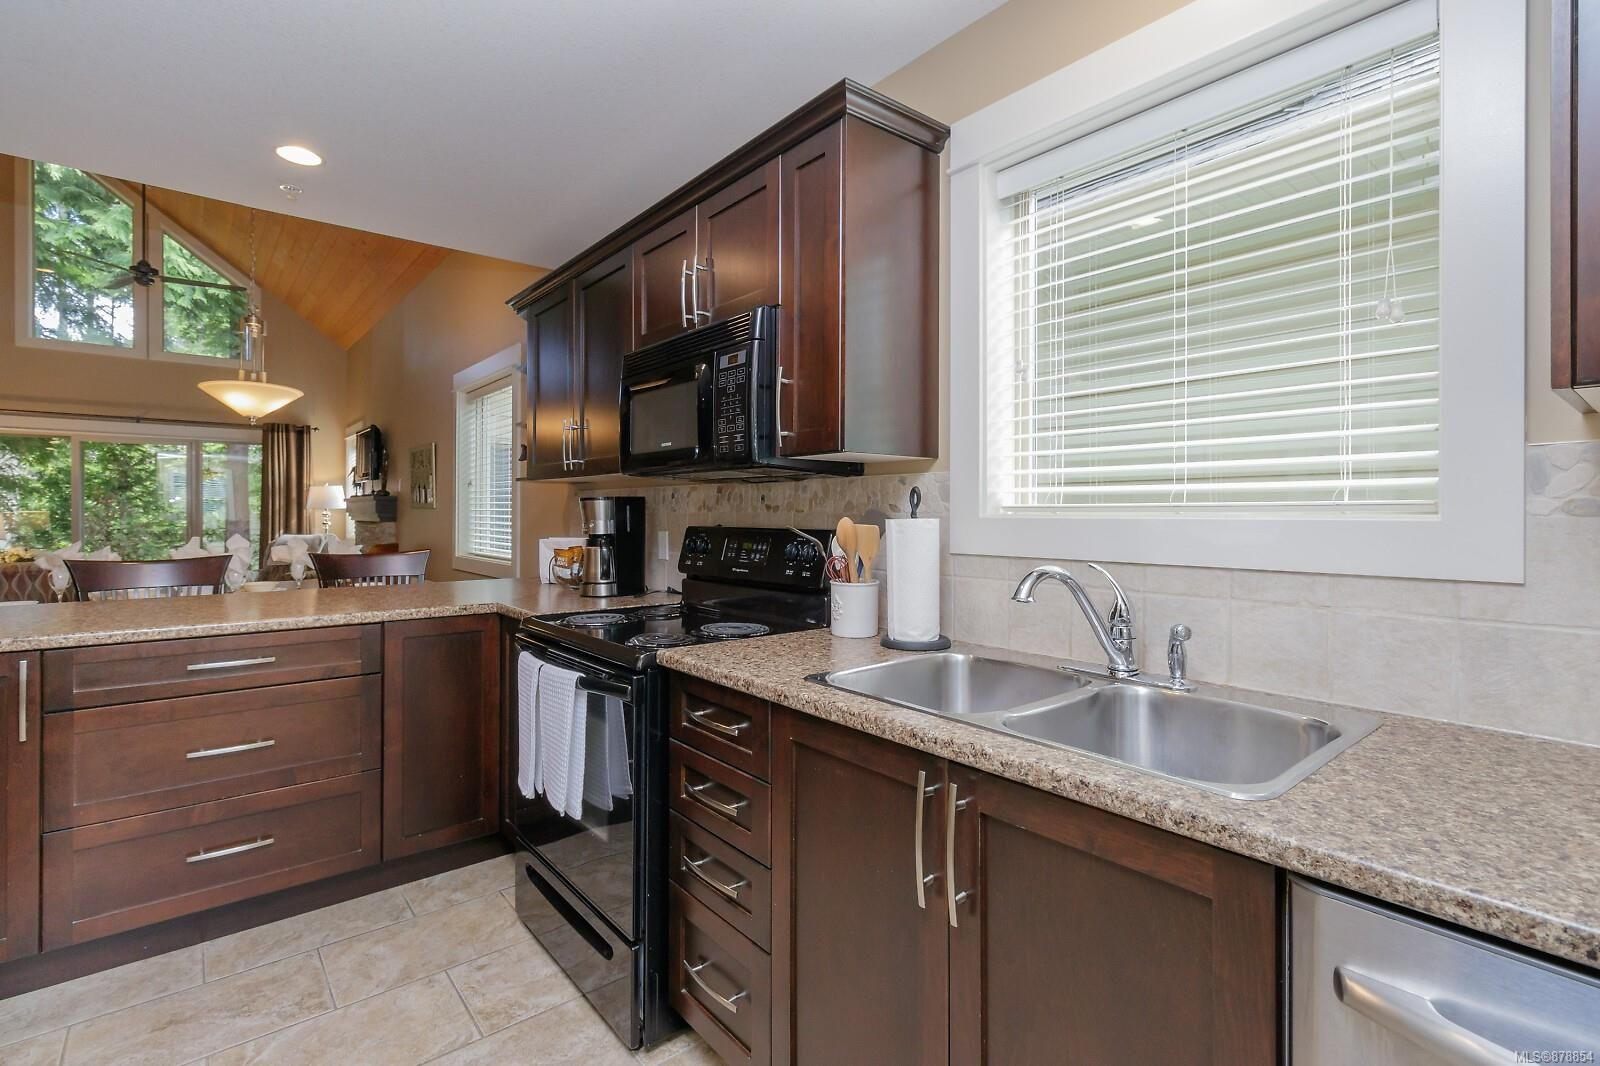 Photo 5: Photos: 223 1130 Resort Dr in : PQ Parksville Row/Townhouse for sale (Parksville/Qualicum)  : MLS®# 878854